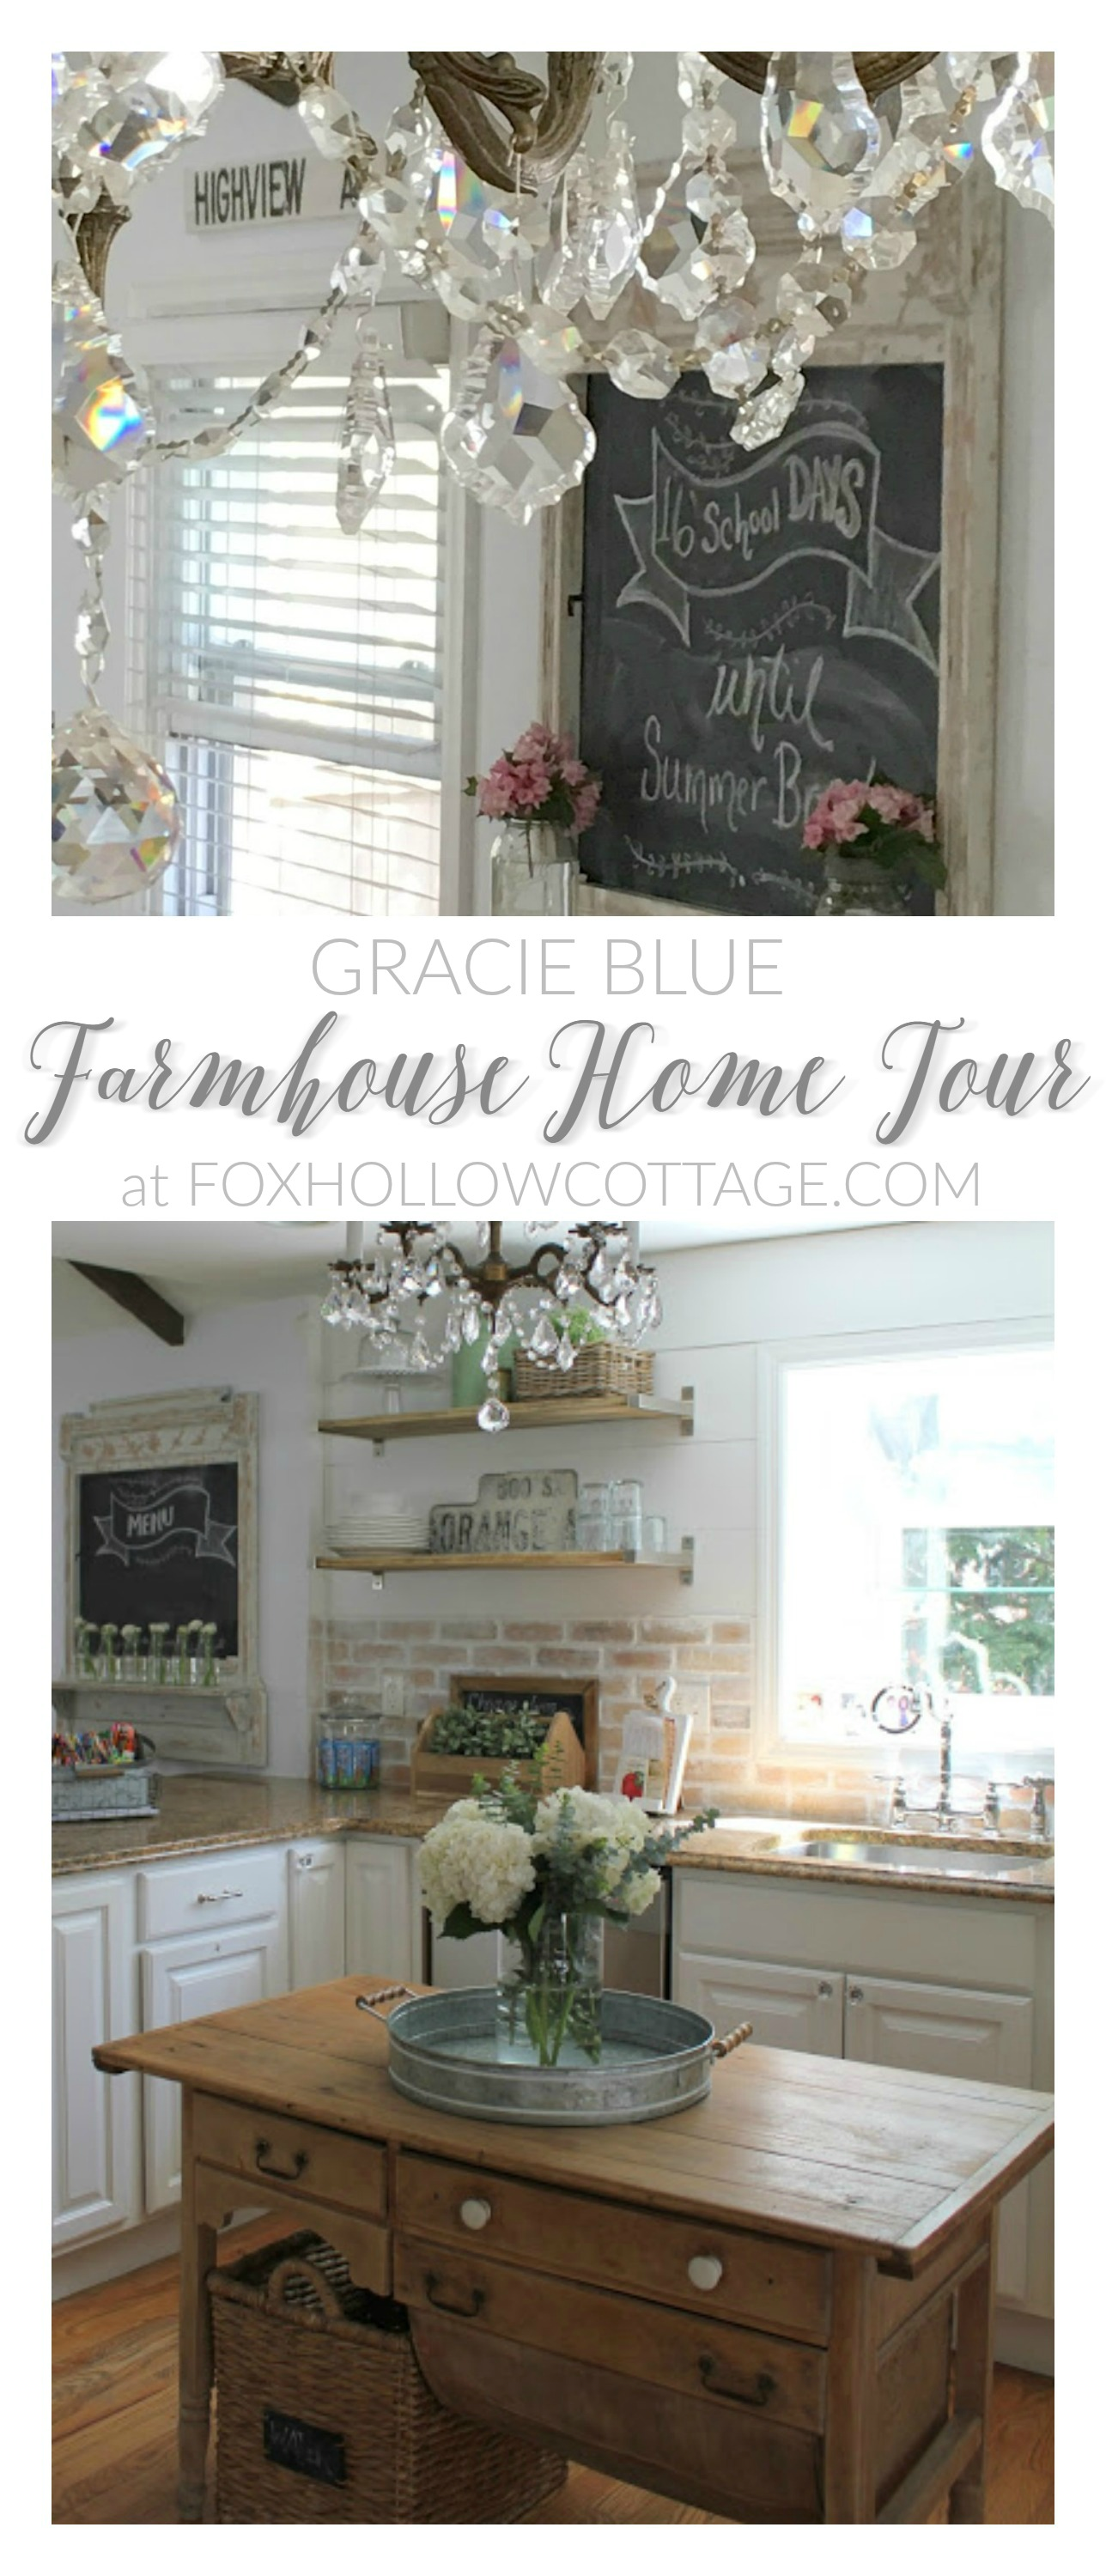 Gracie Blue Farmhouse Home Tour at foxhollowcottage.com .